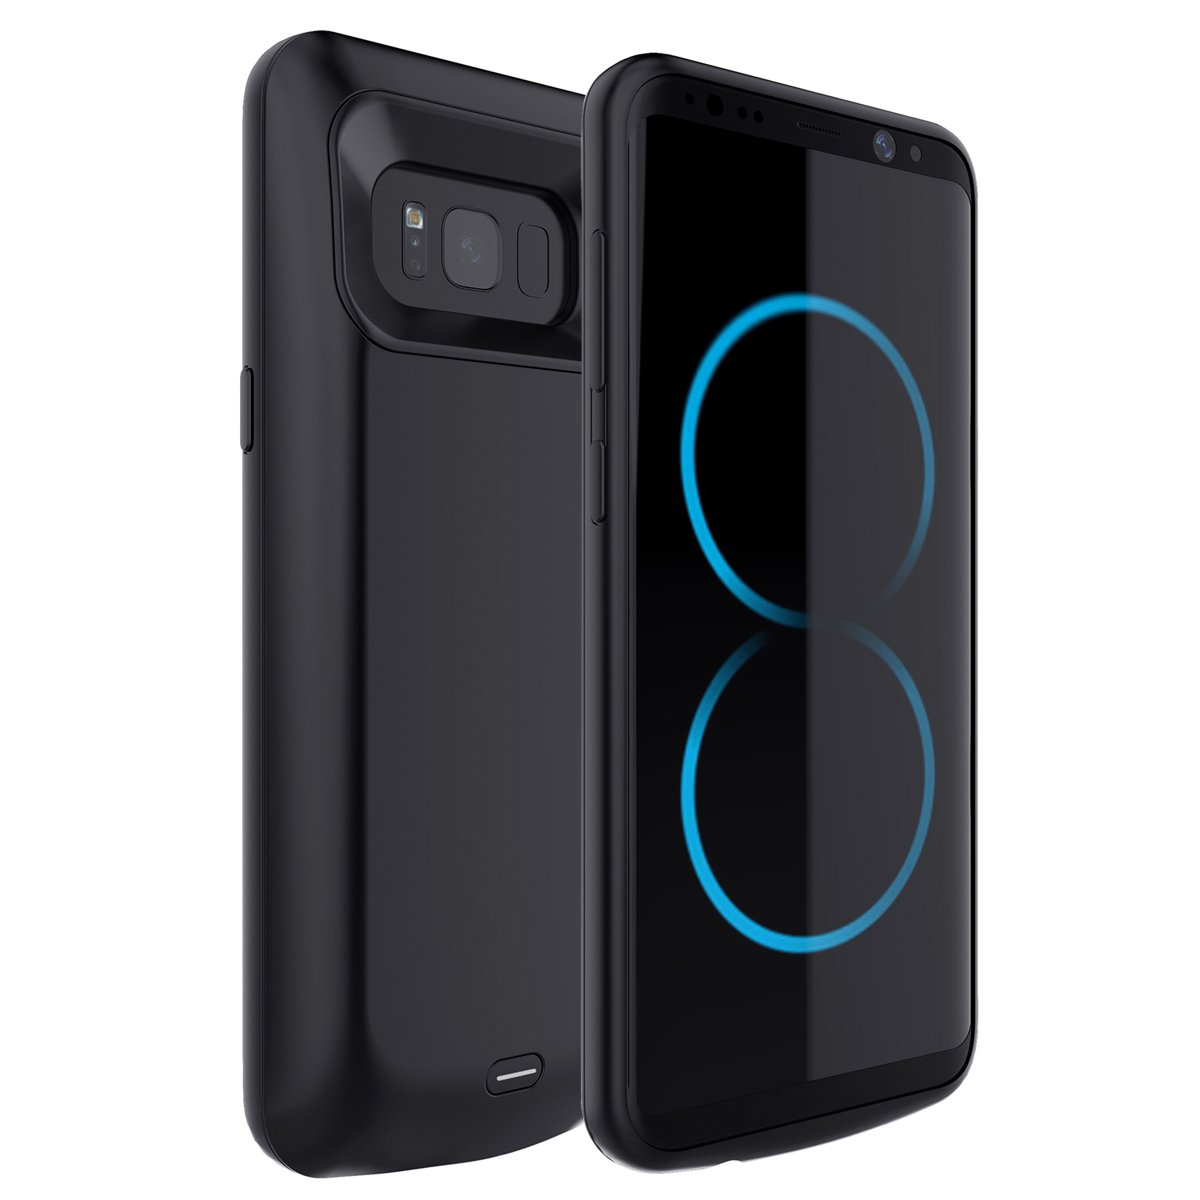 Scheam Samsung Galaxy S8 Plus Battery Battery Case, Portable Charging Case for Samsung Galaxy S8 Plus Battery Extended Battery Juice Pack Power Bank ()